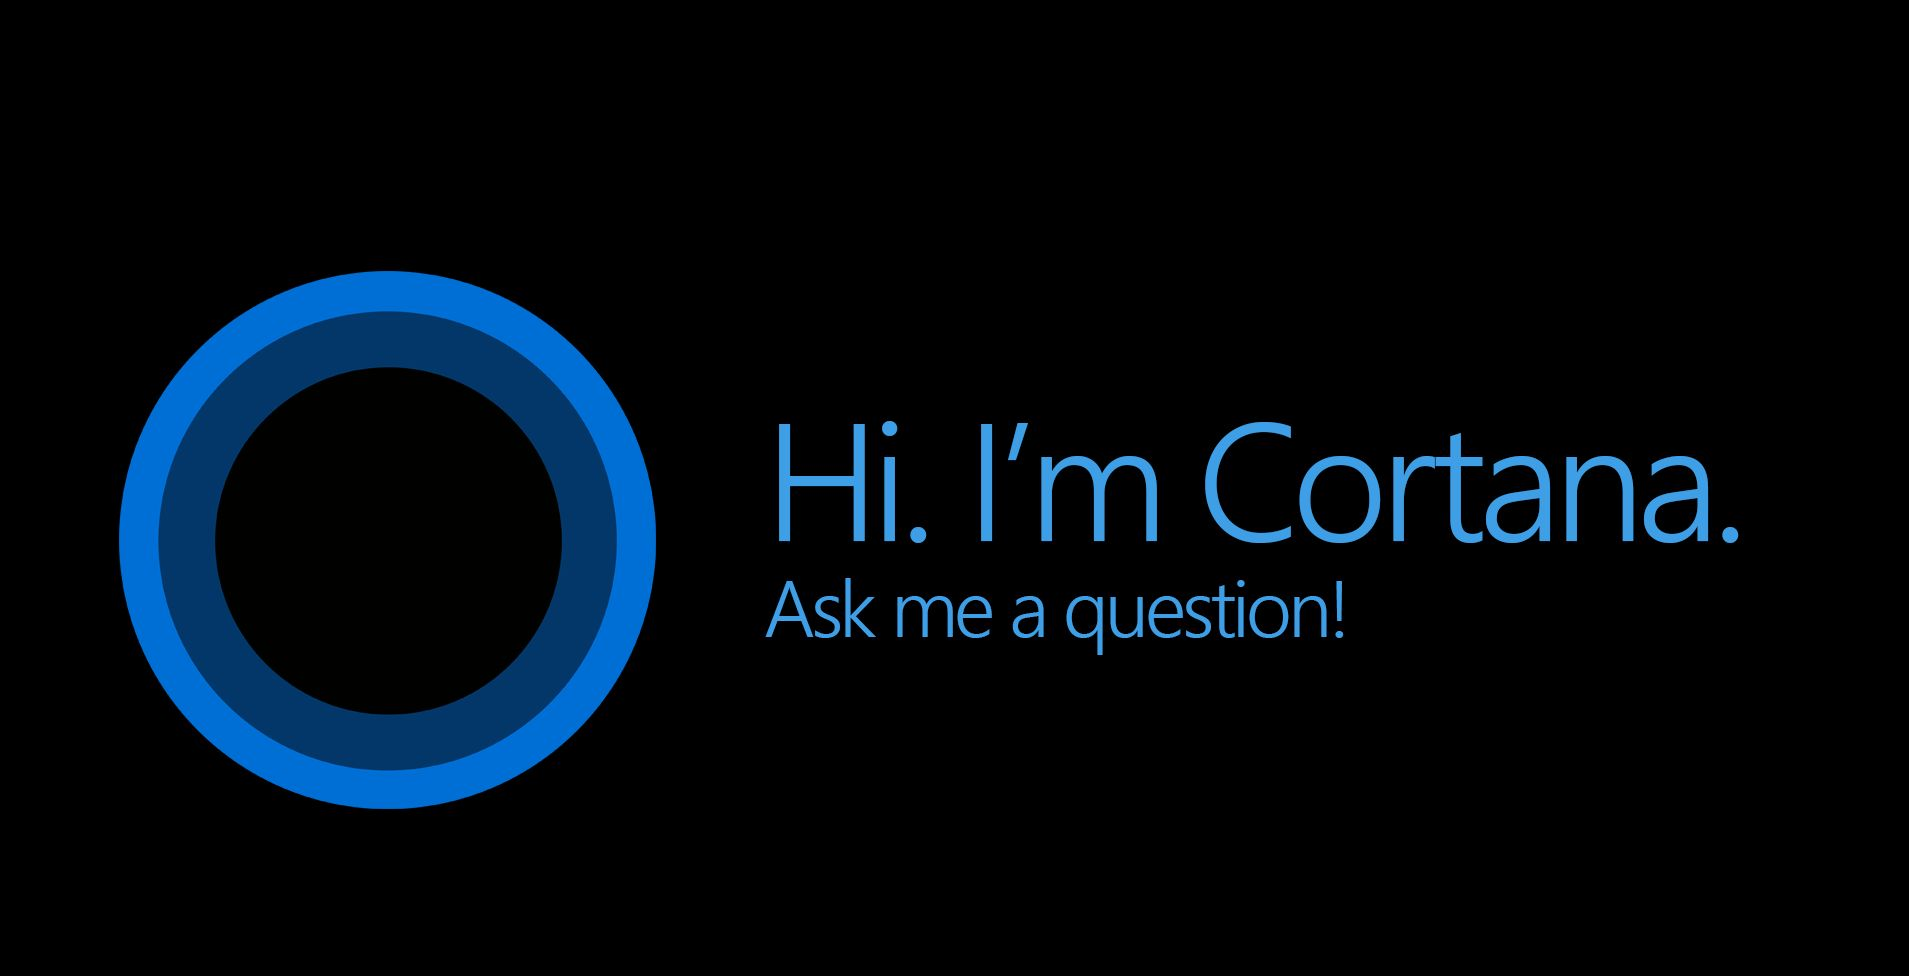 cortana ask me anything